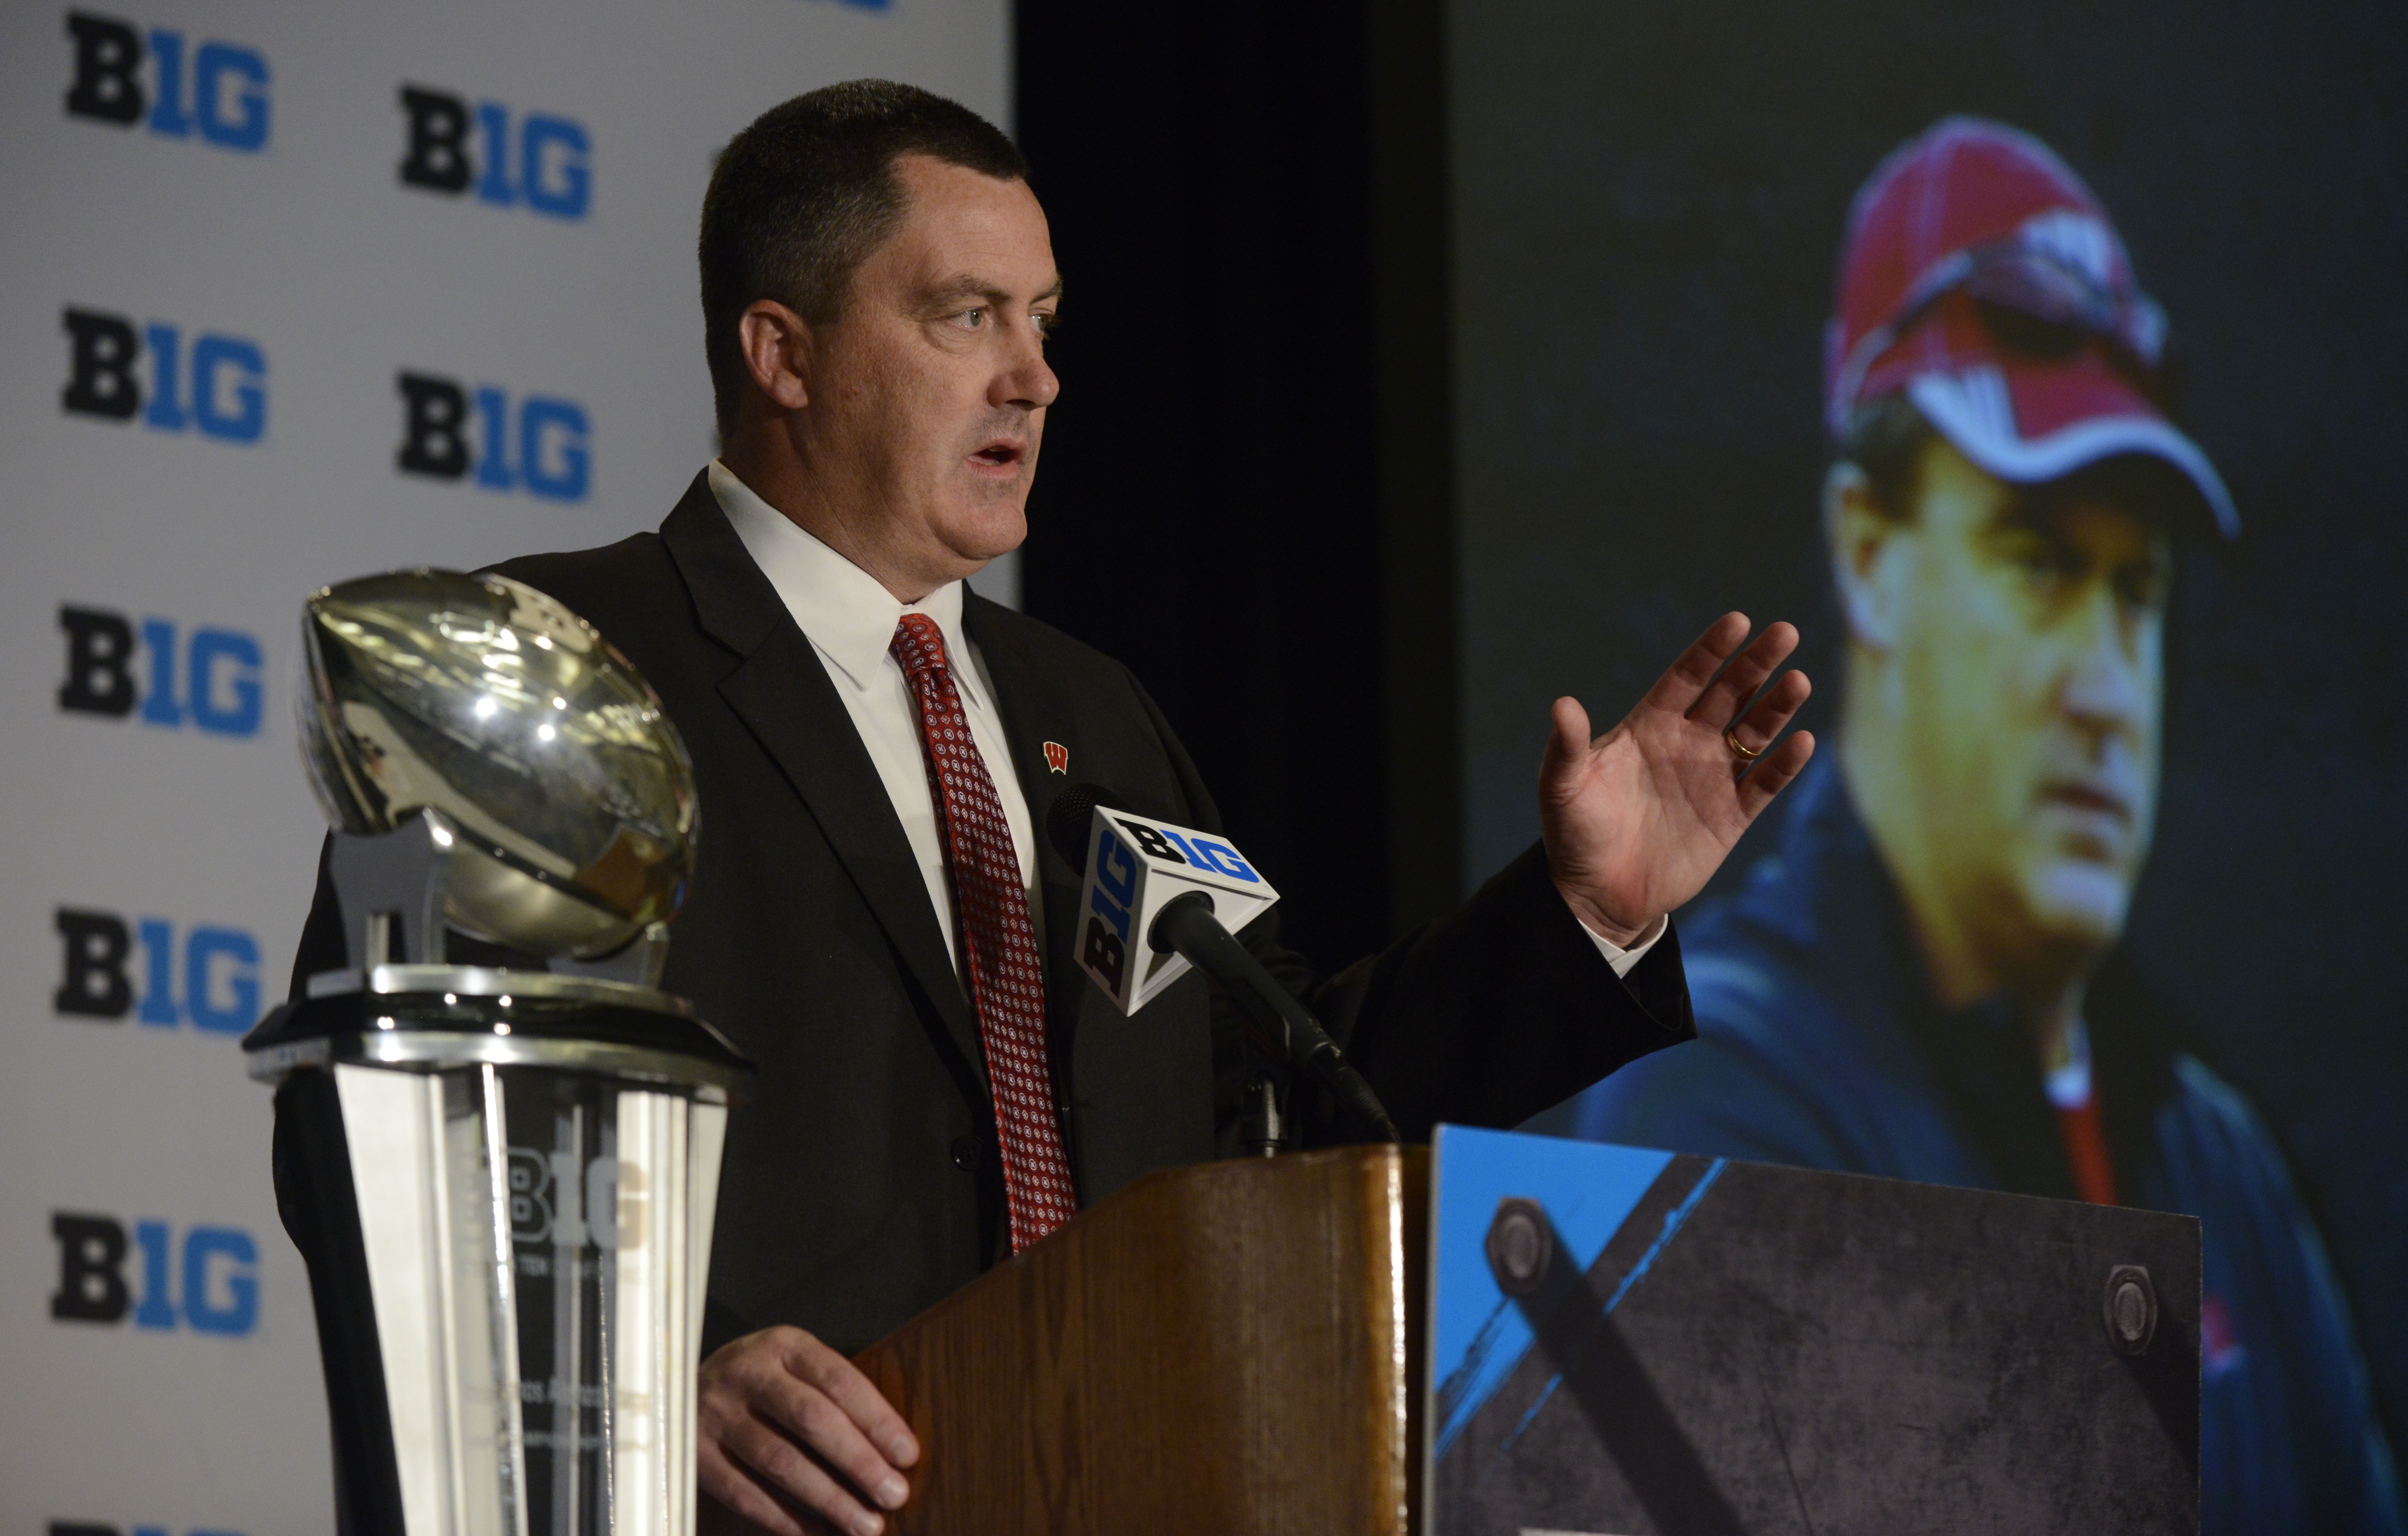 Wisconsin head coach Paul Chryst speaks to the media during the NCAA college Big Ten Football Media Day Thursday, July 30, 2015 in Chicago. (AP Photo/Paul Beaty)